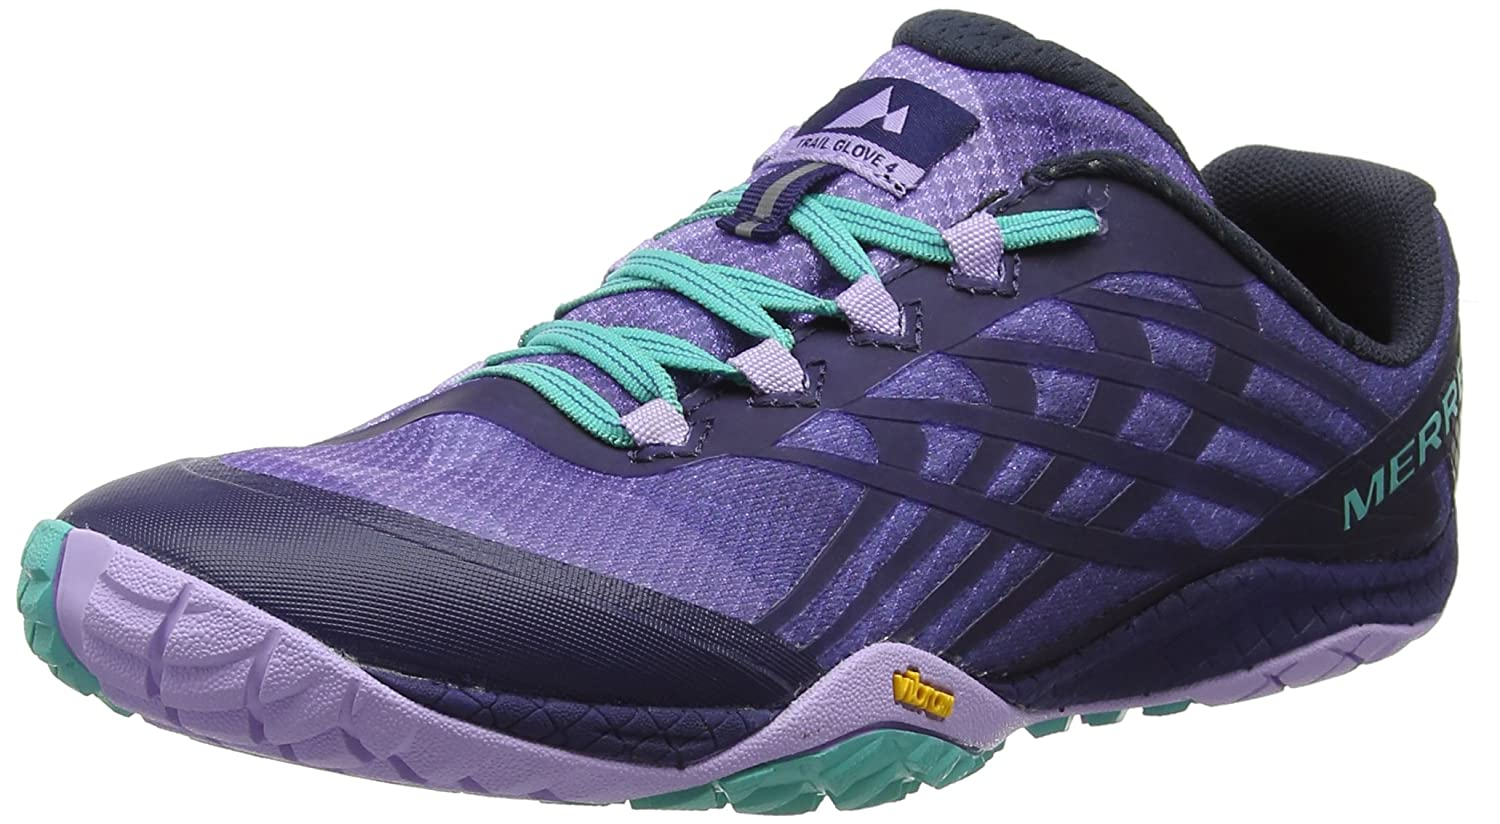 Merrell Women's Glove 4 Trail Runner B077P7DWPZ 8 B(M) US|Very Grape/Astral Aura